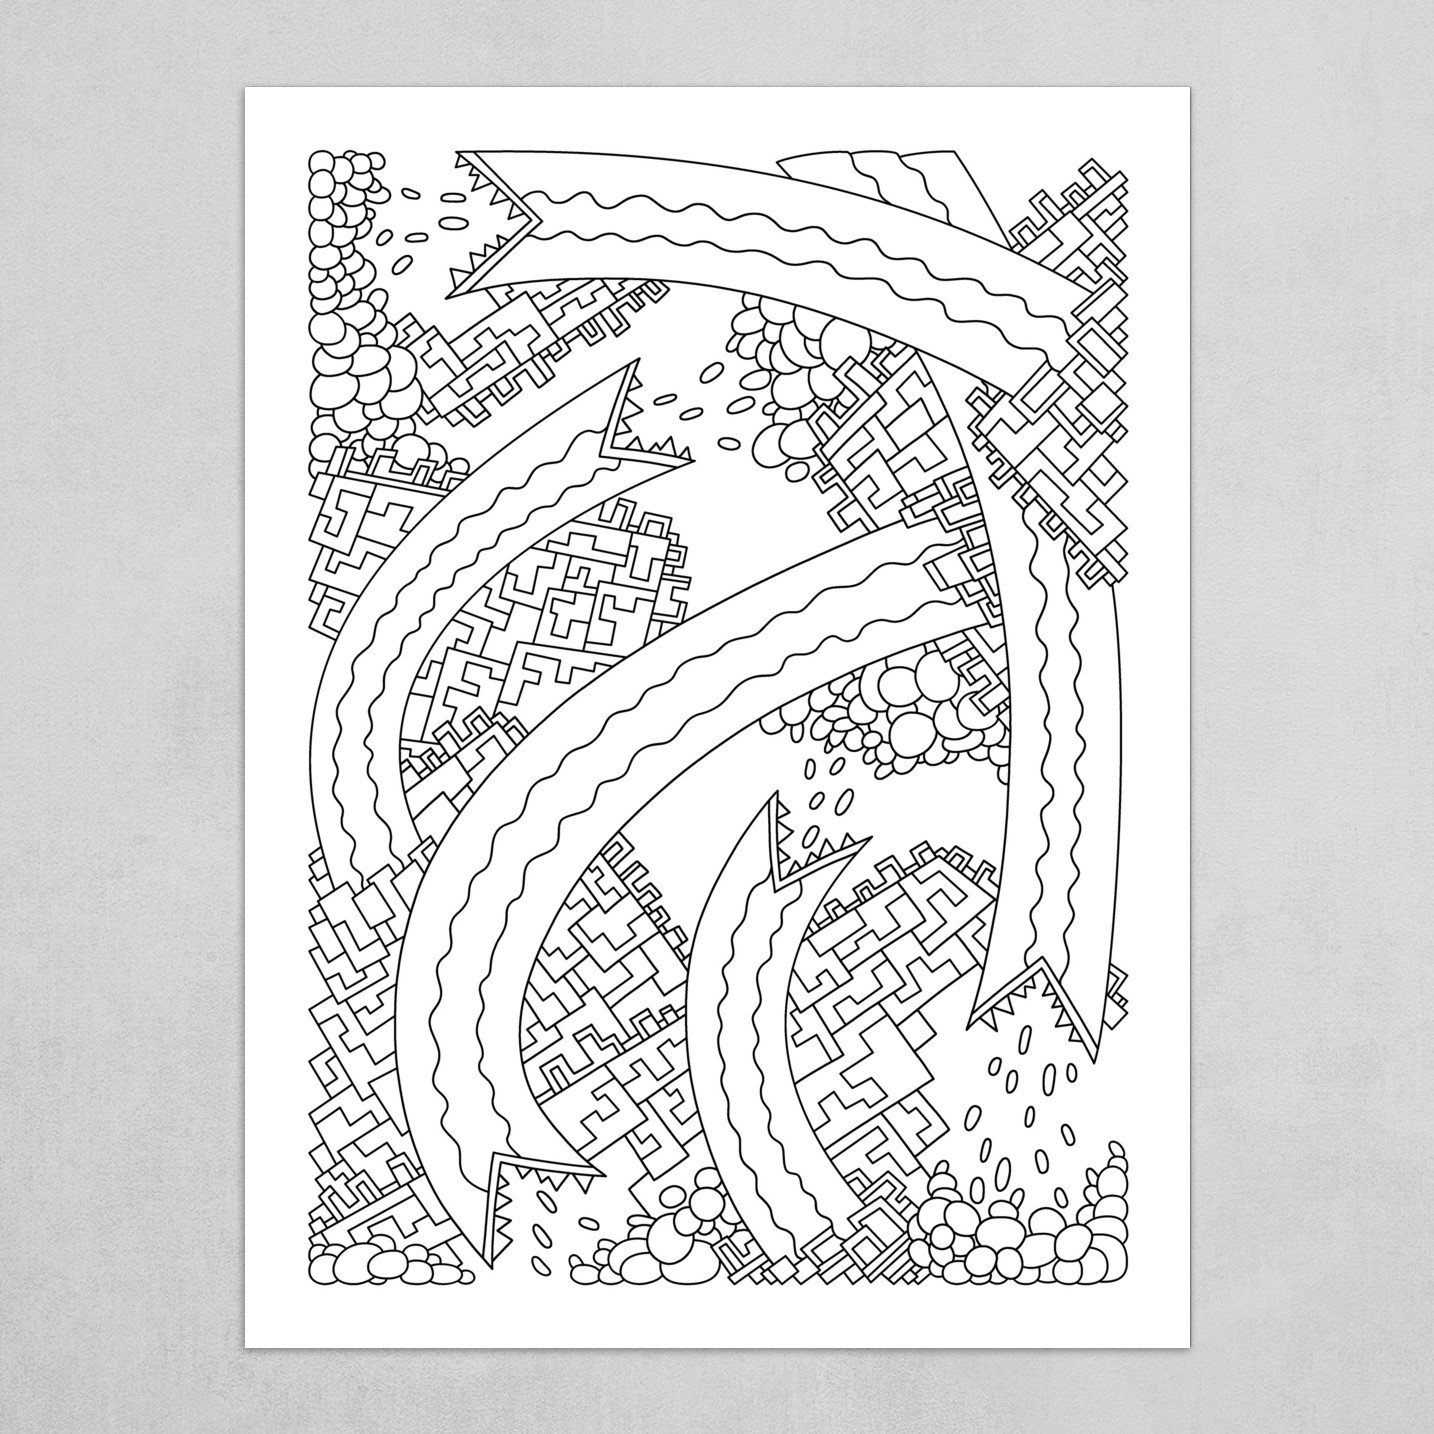 Wandering Abstract Line Art 19: Black & White